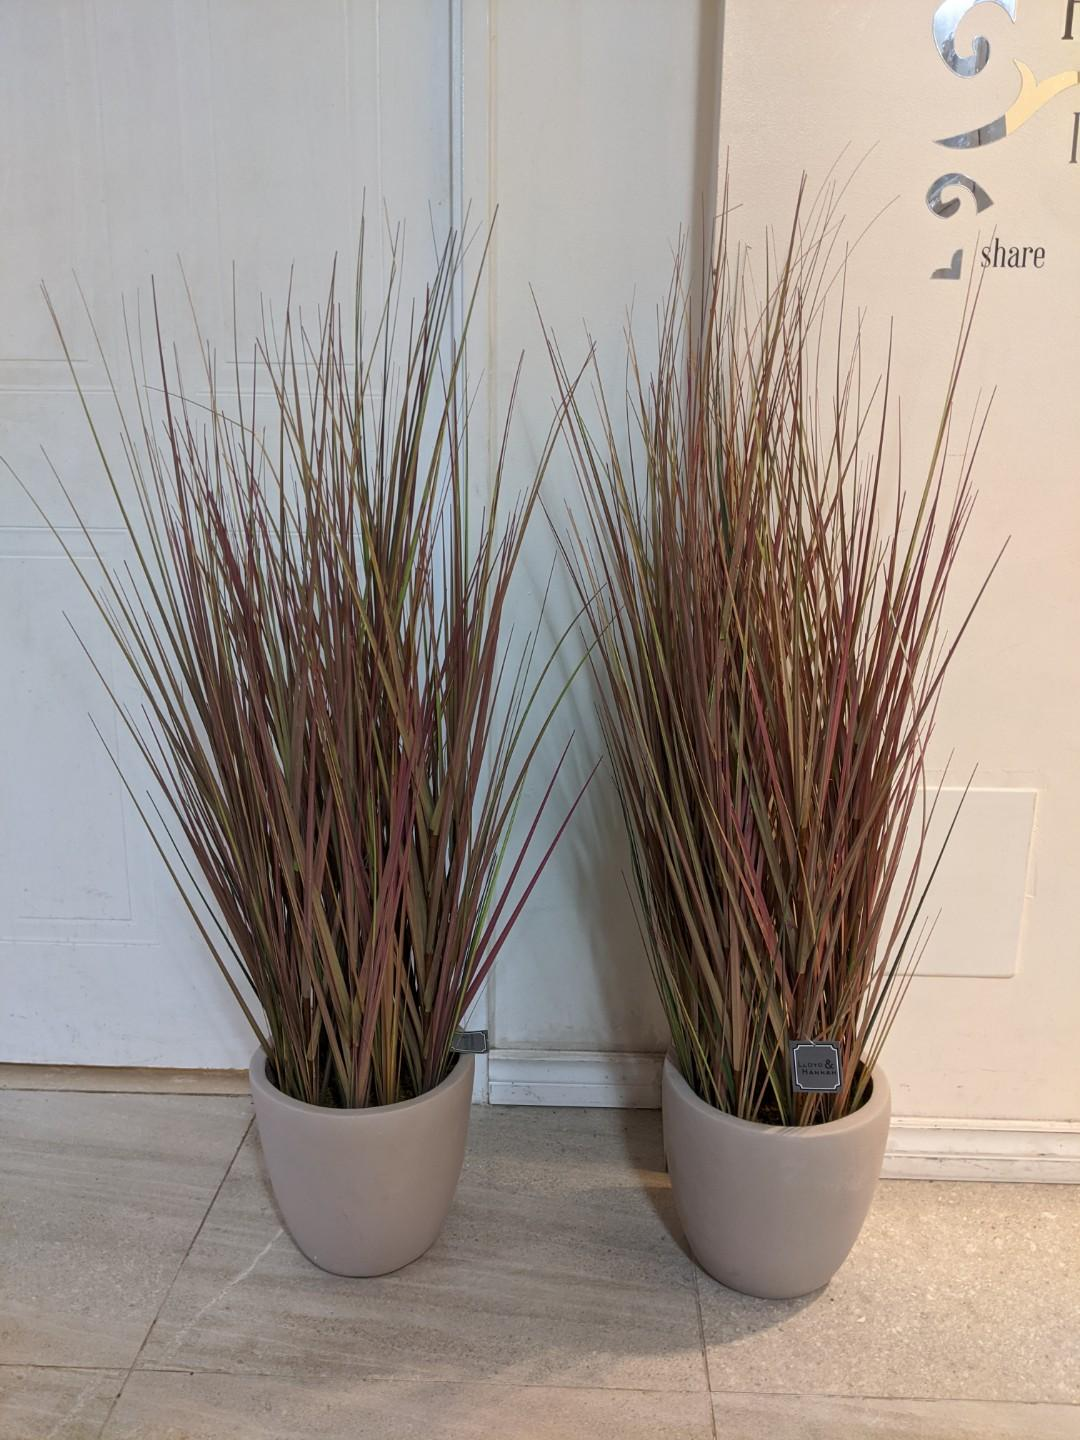 Brand New 4' POTTED FAUX GRASS - Lloyd & Hannah - $30 each